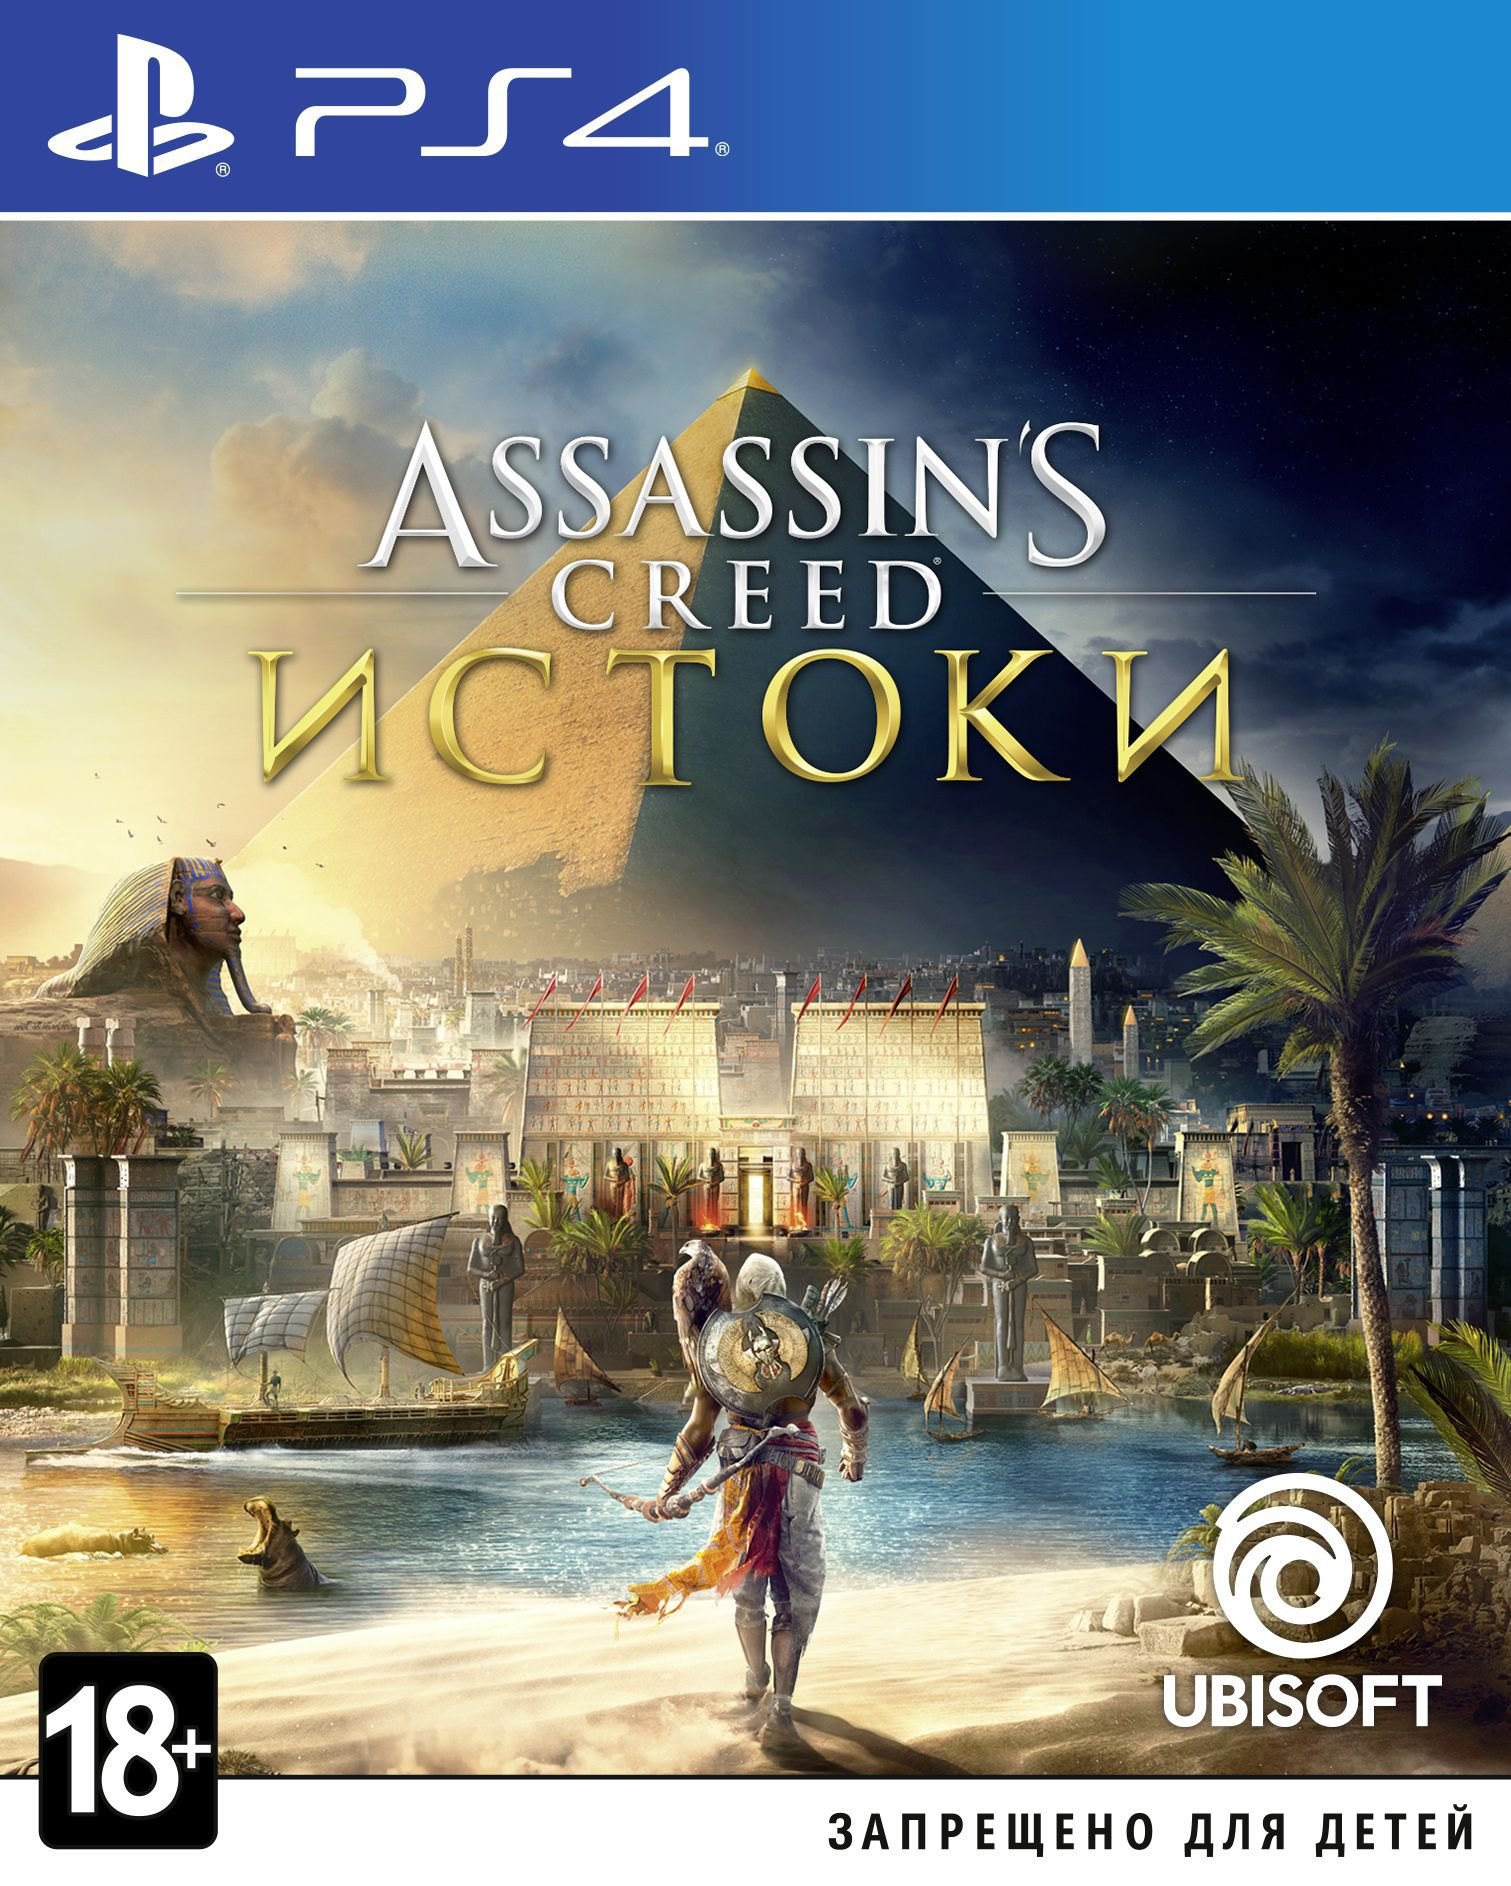 Assassin's Creed Origins Gold Edition [PS4] 5.05 / 6.72 [EUR] (2017) [Русский/Английский] (v1.41)